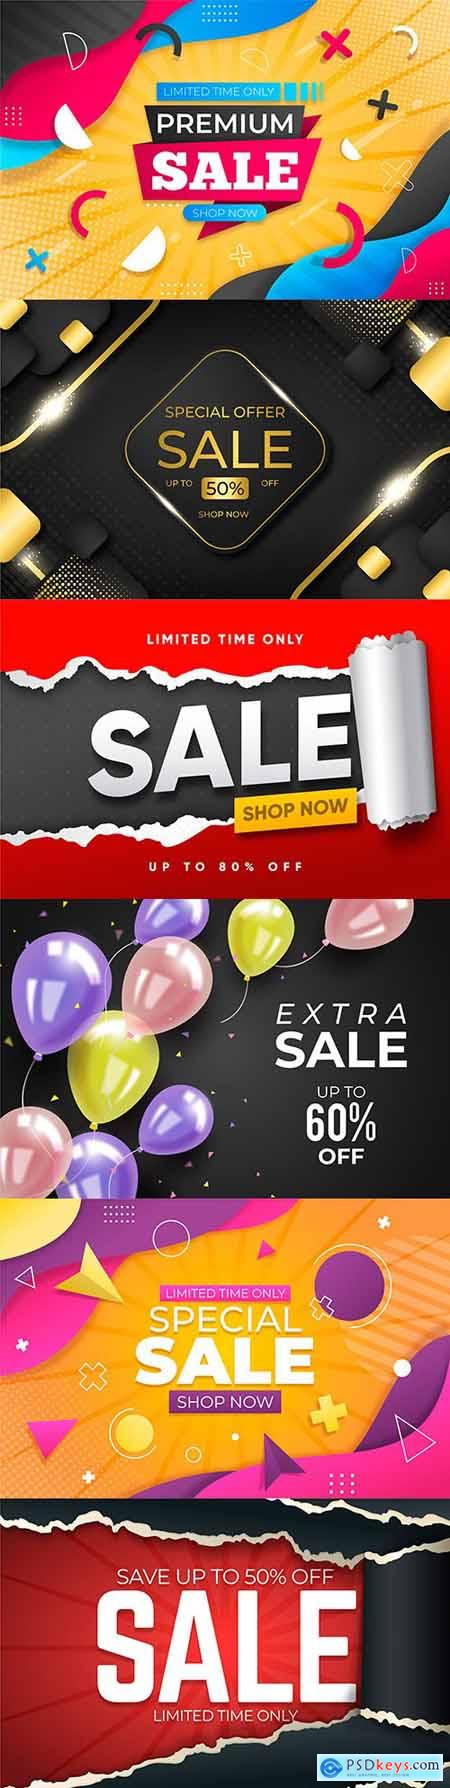 Super sales and mega discounts gradient abstract background